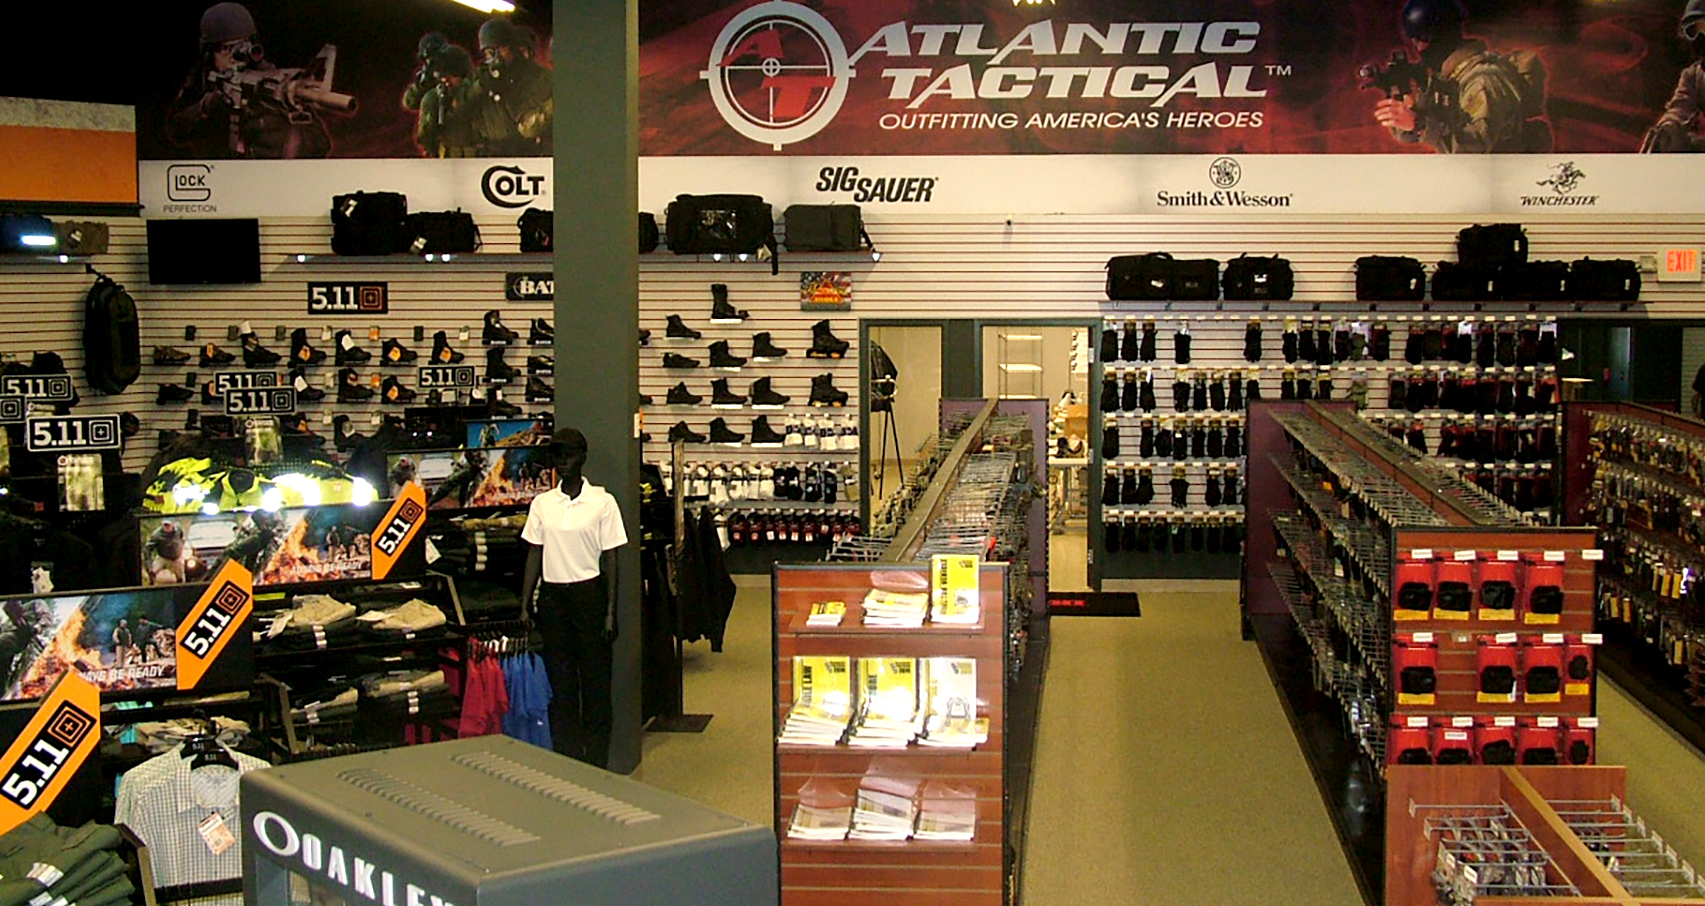 Atlantic Tactical Joins the National Association of Police Equipment Distributors